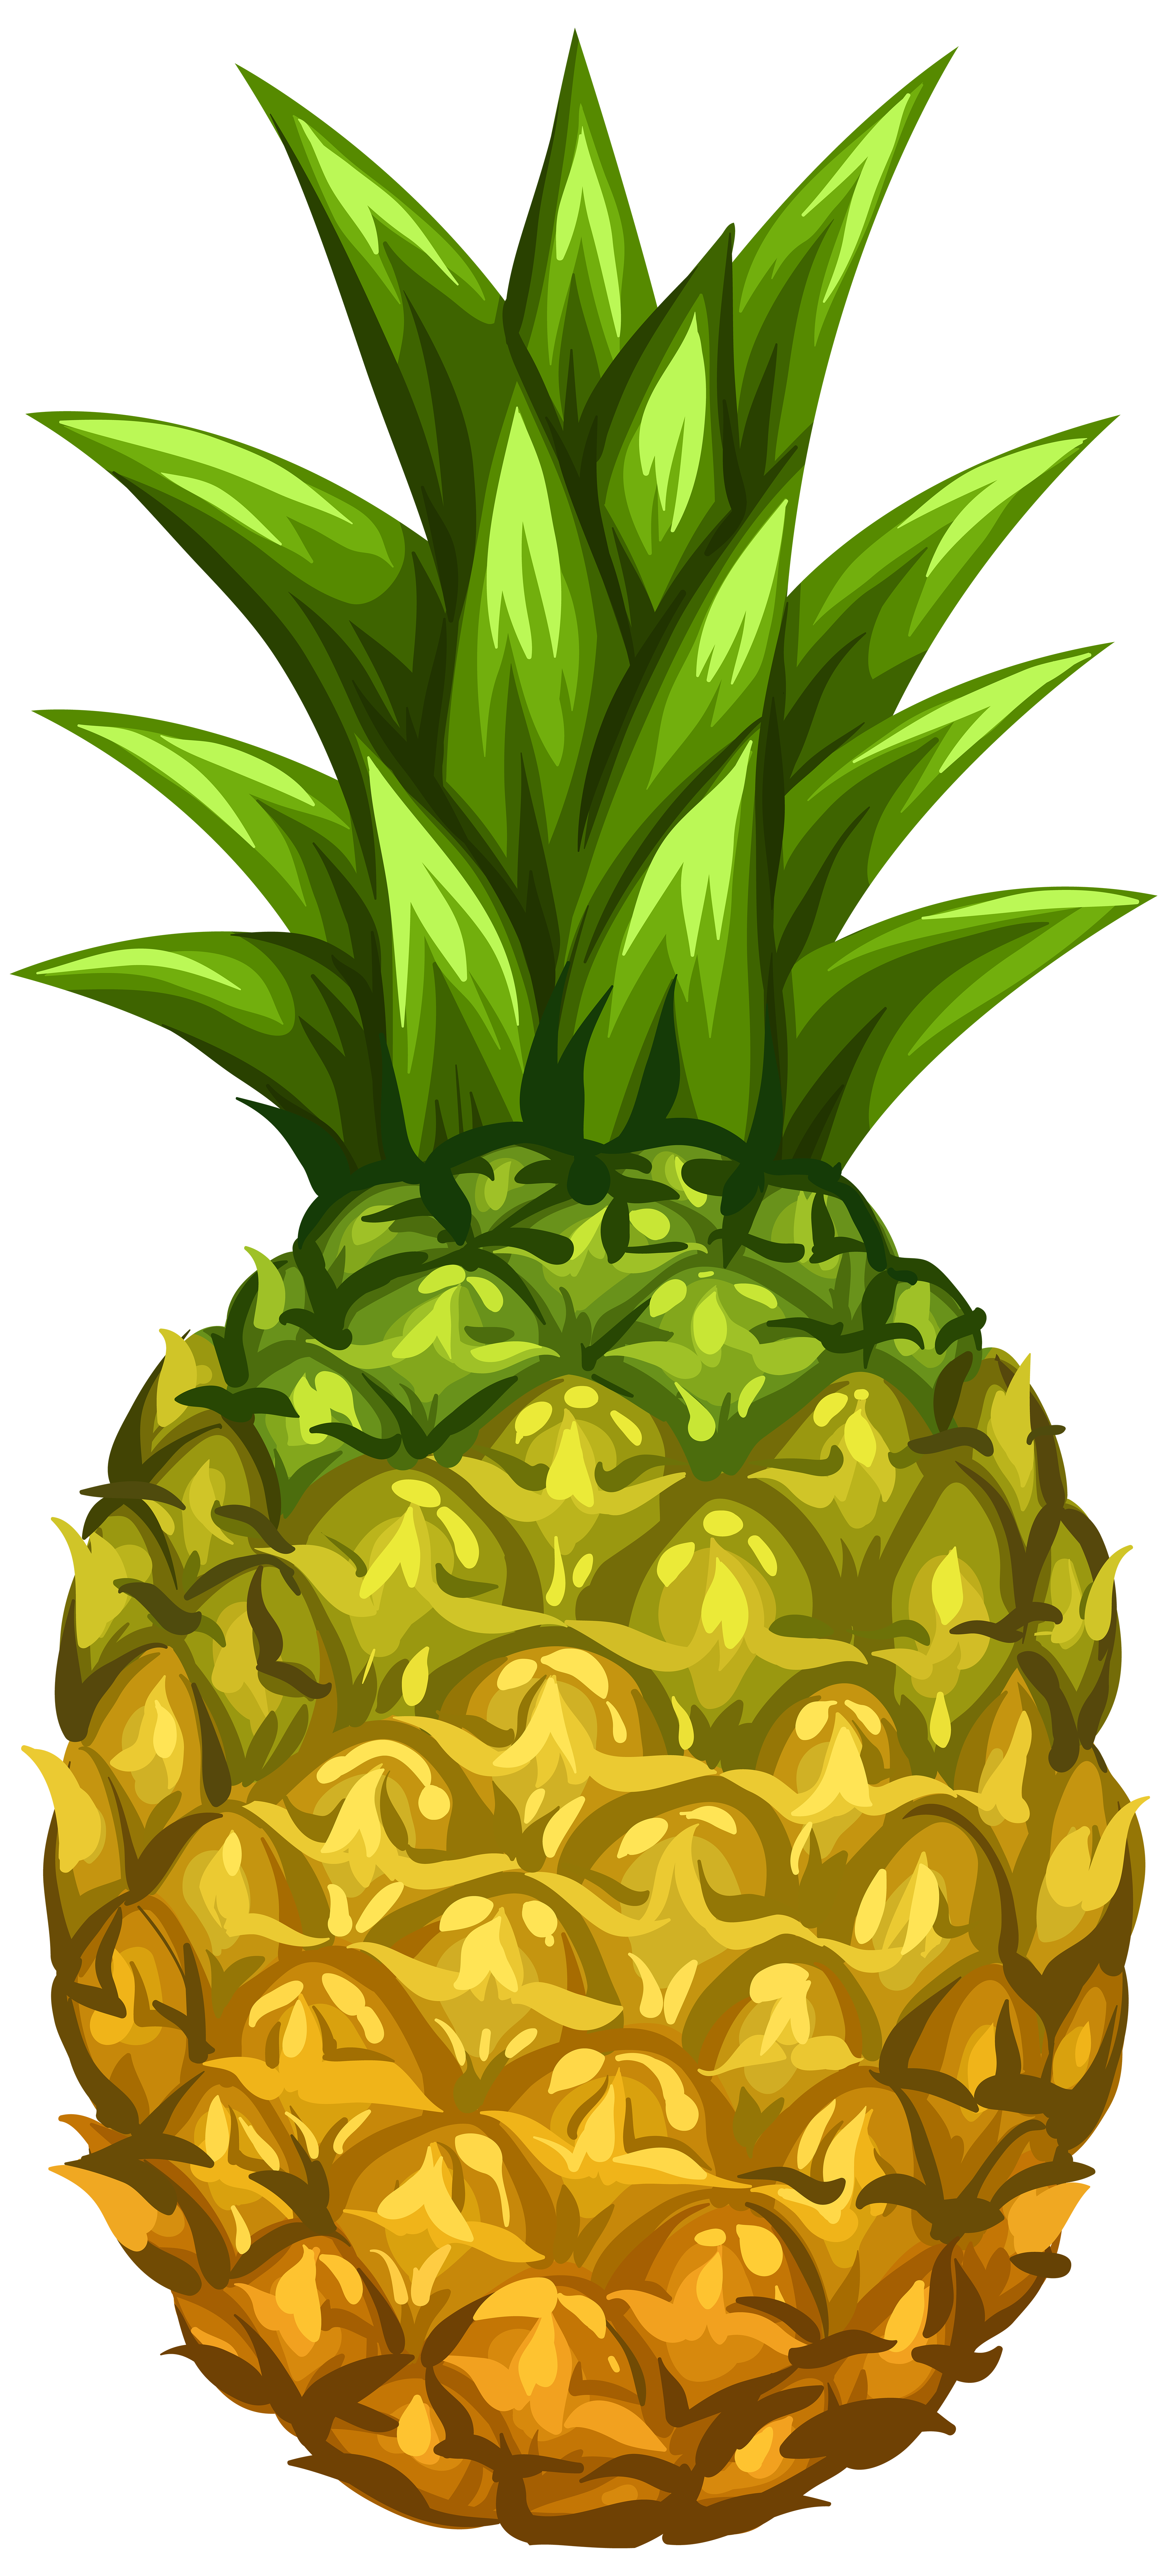 Pineapple PNG Clip Art Image.